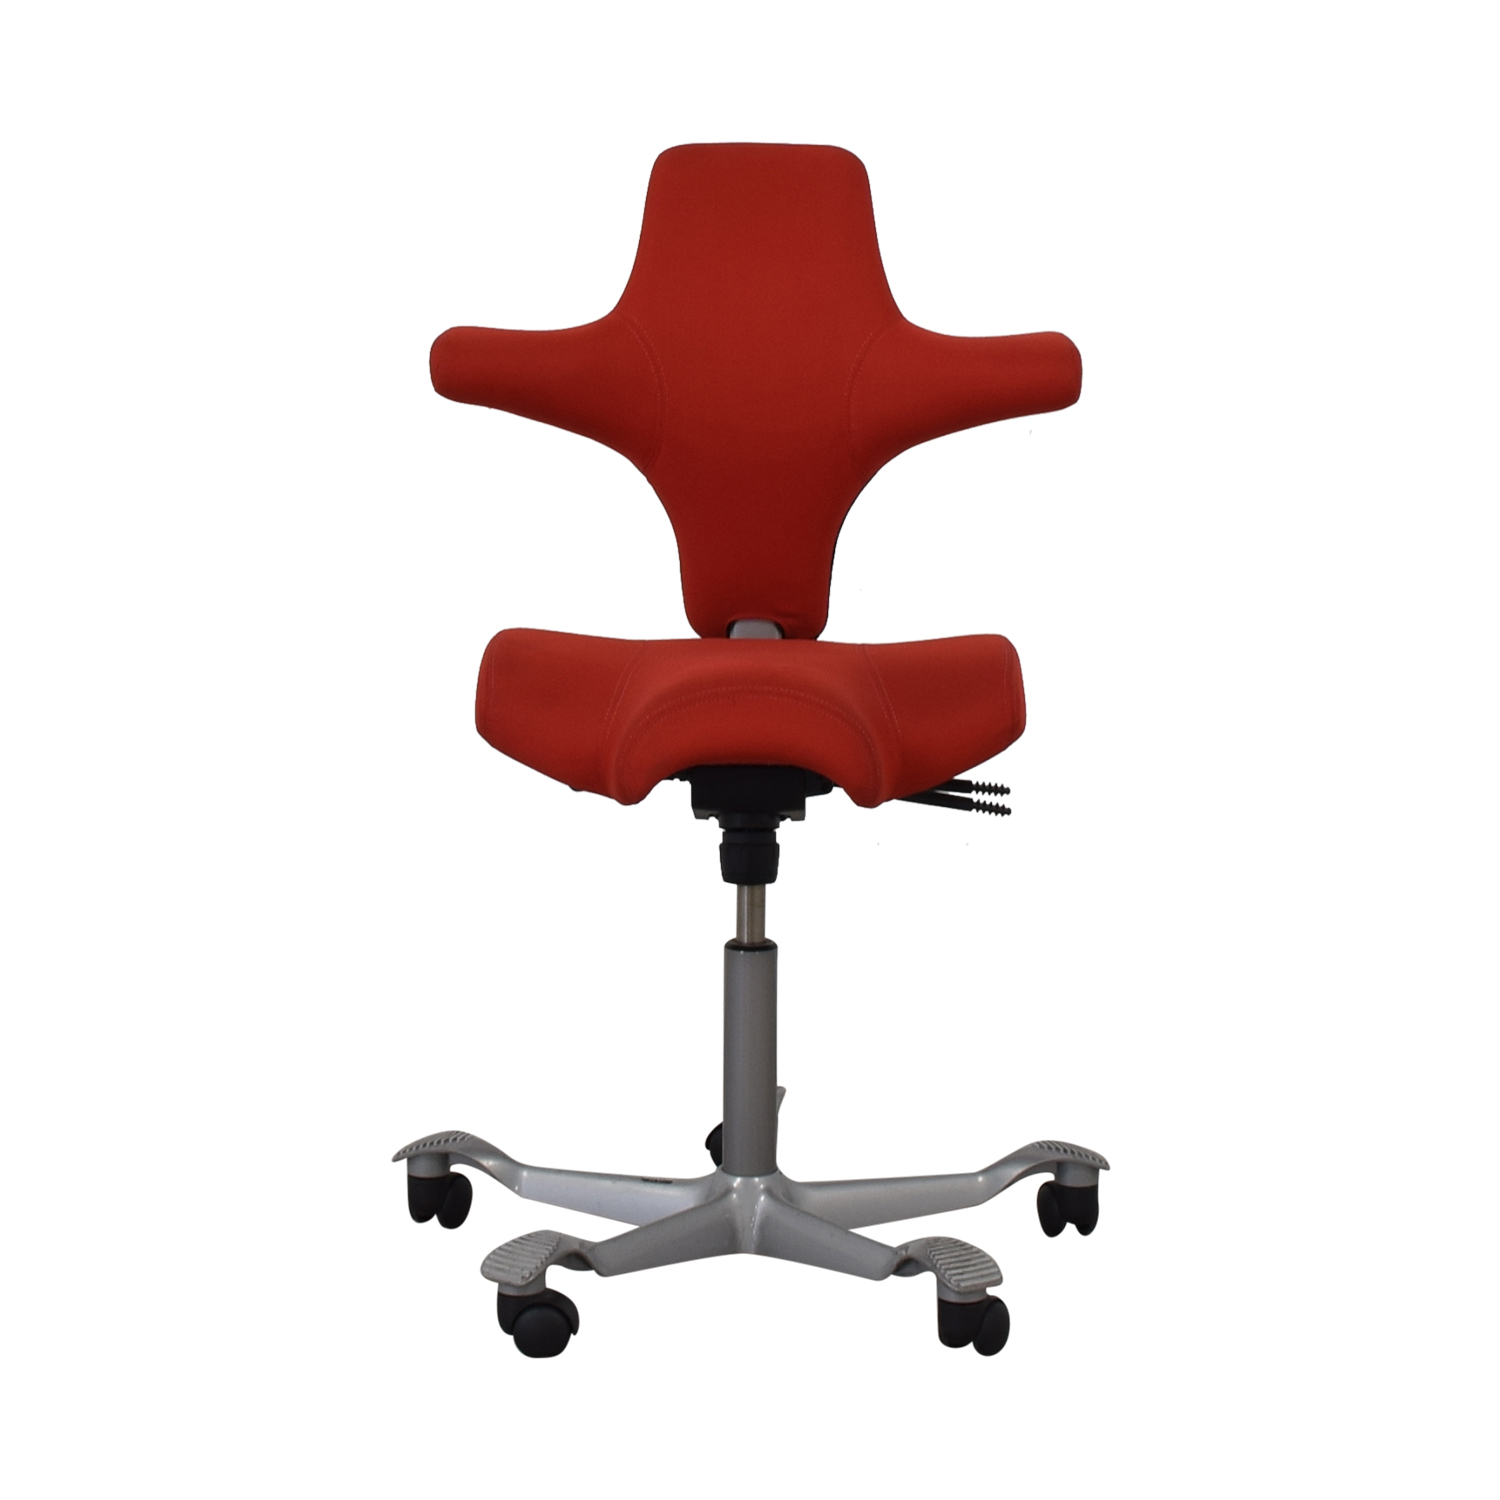 HAG HÅG Capisco Office Chair dimensions